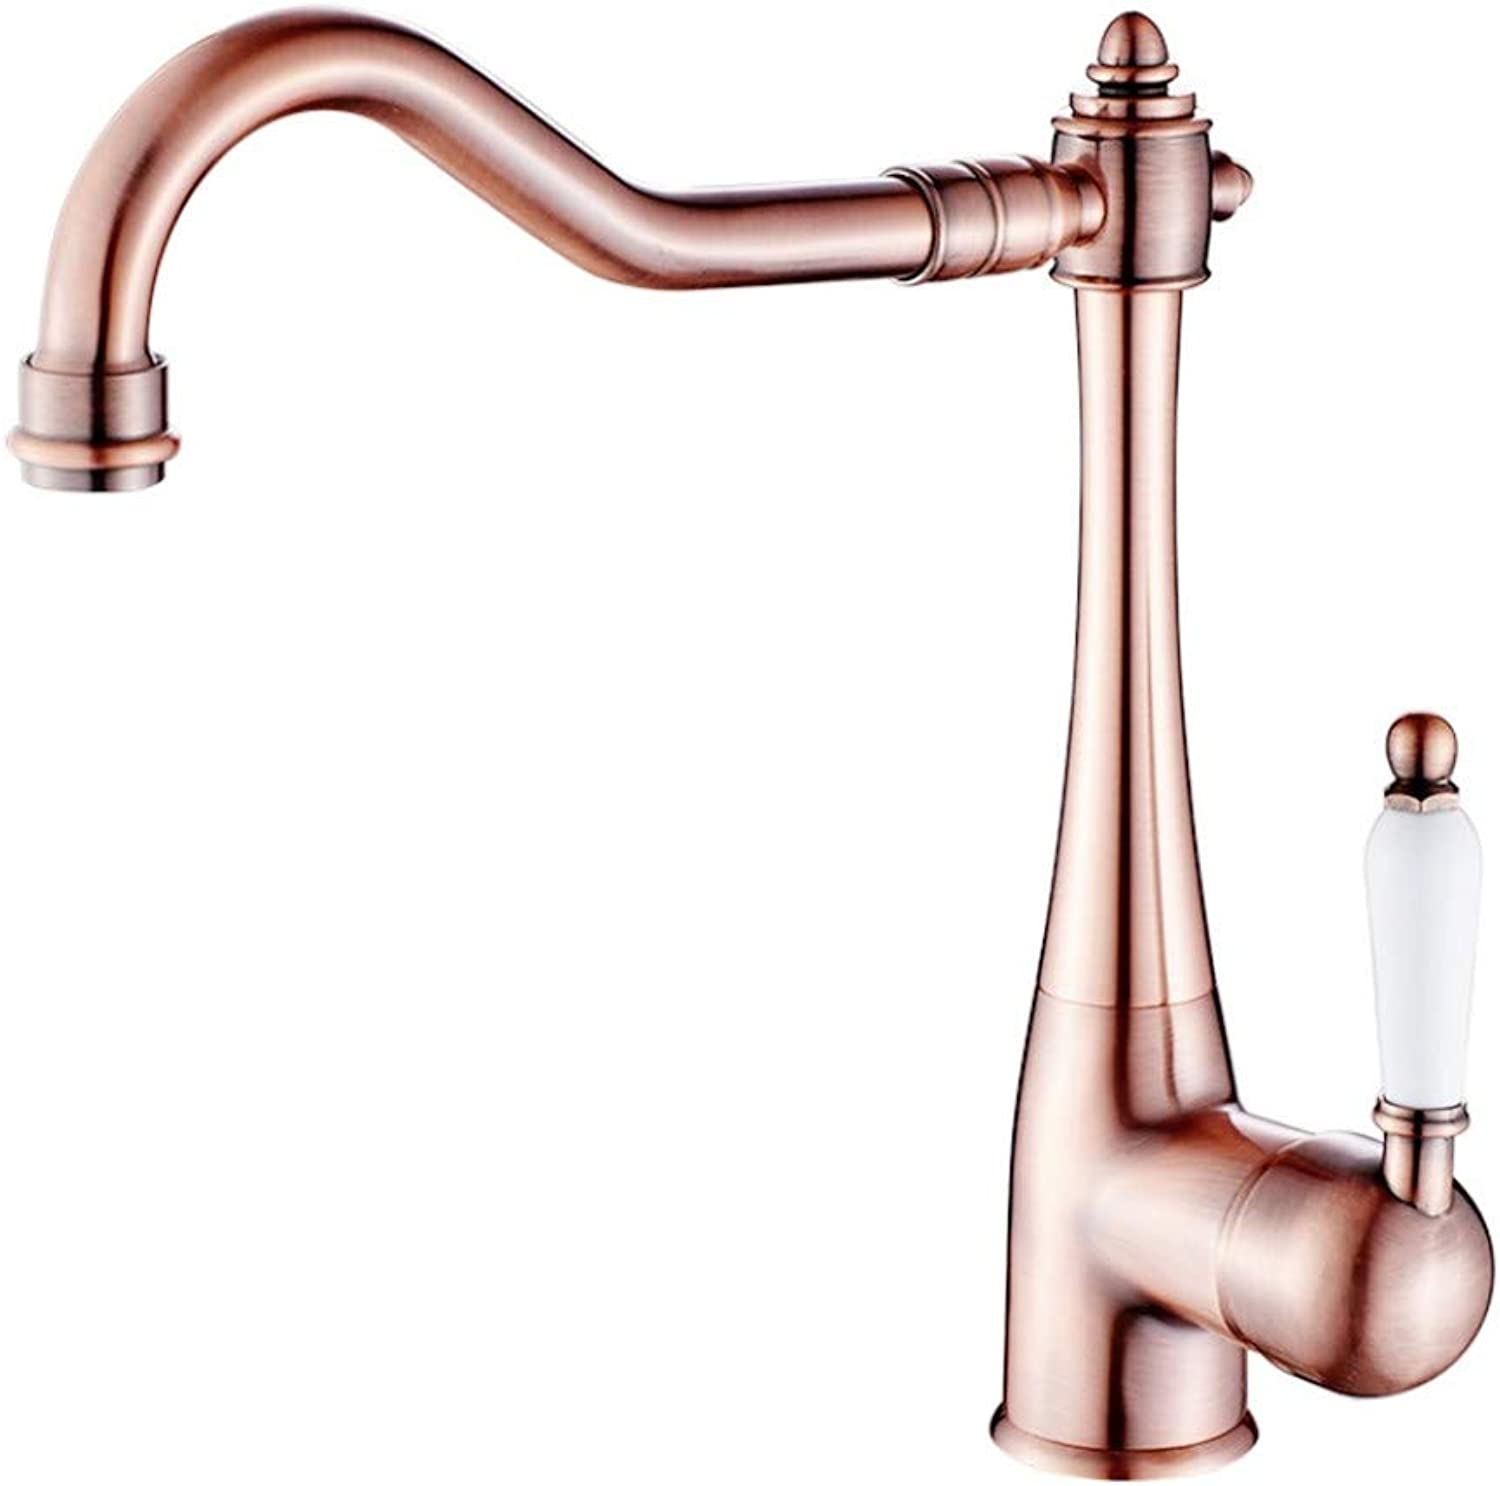 Kitchen Sink Taps Bathroom Taps All Copper Red Bronze Handle redary Hot and Cold Water Faucet European Retro Basin Top Basin Faucet.